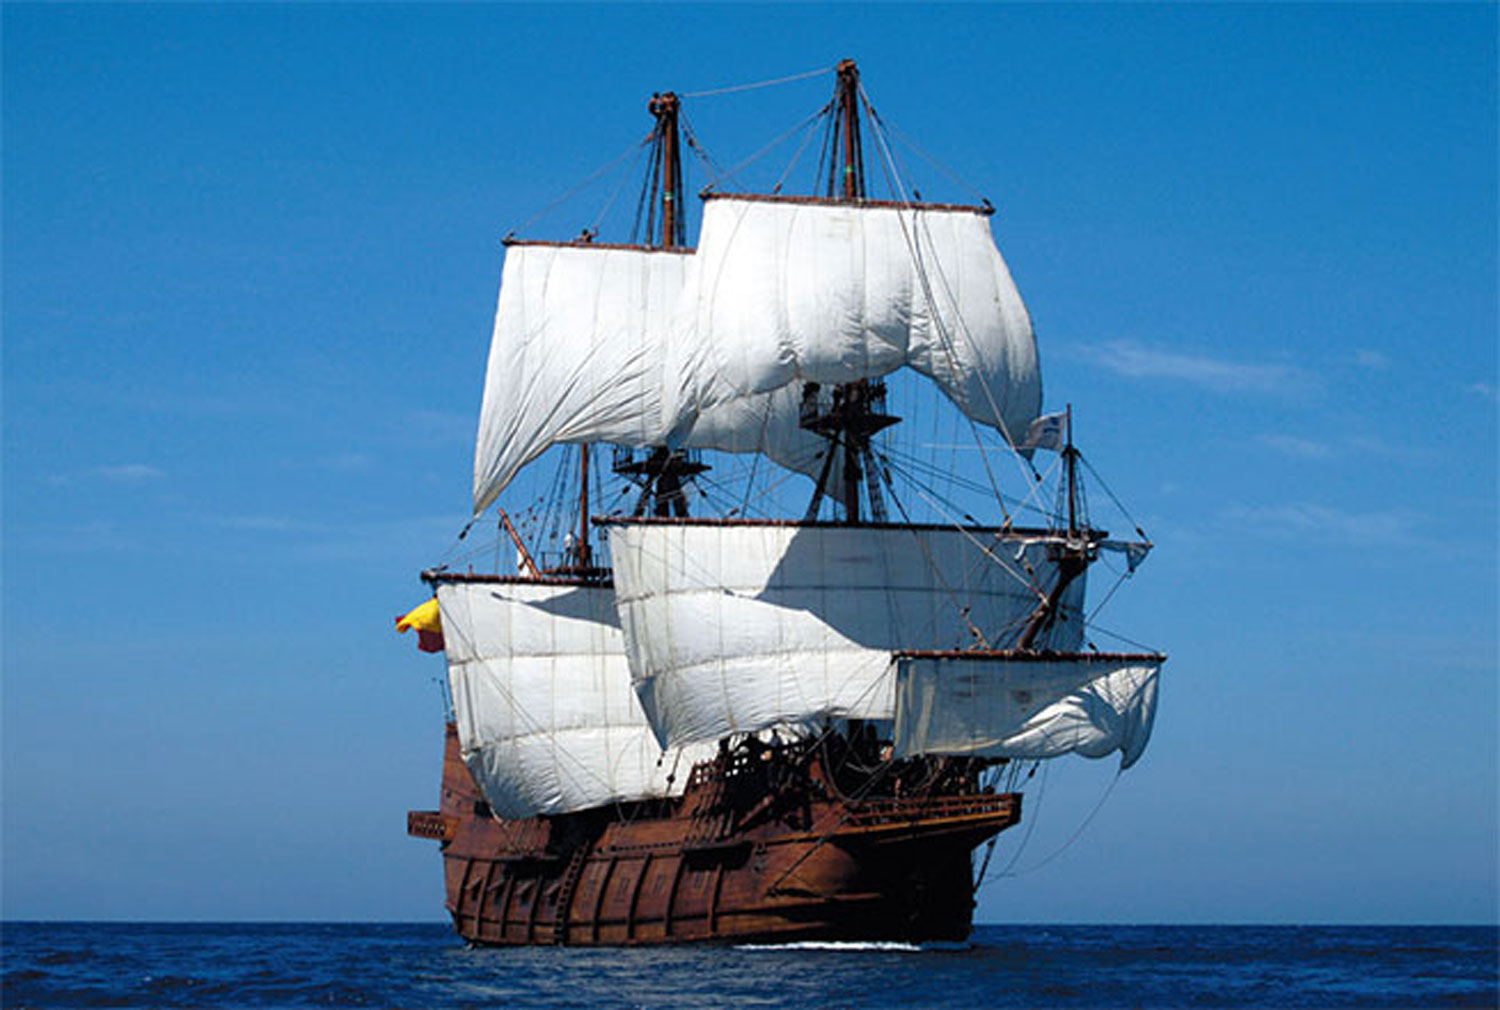 Spanish Galleon Participates In Tall Ship Festival In